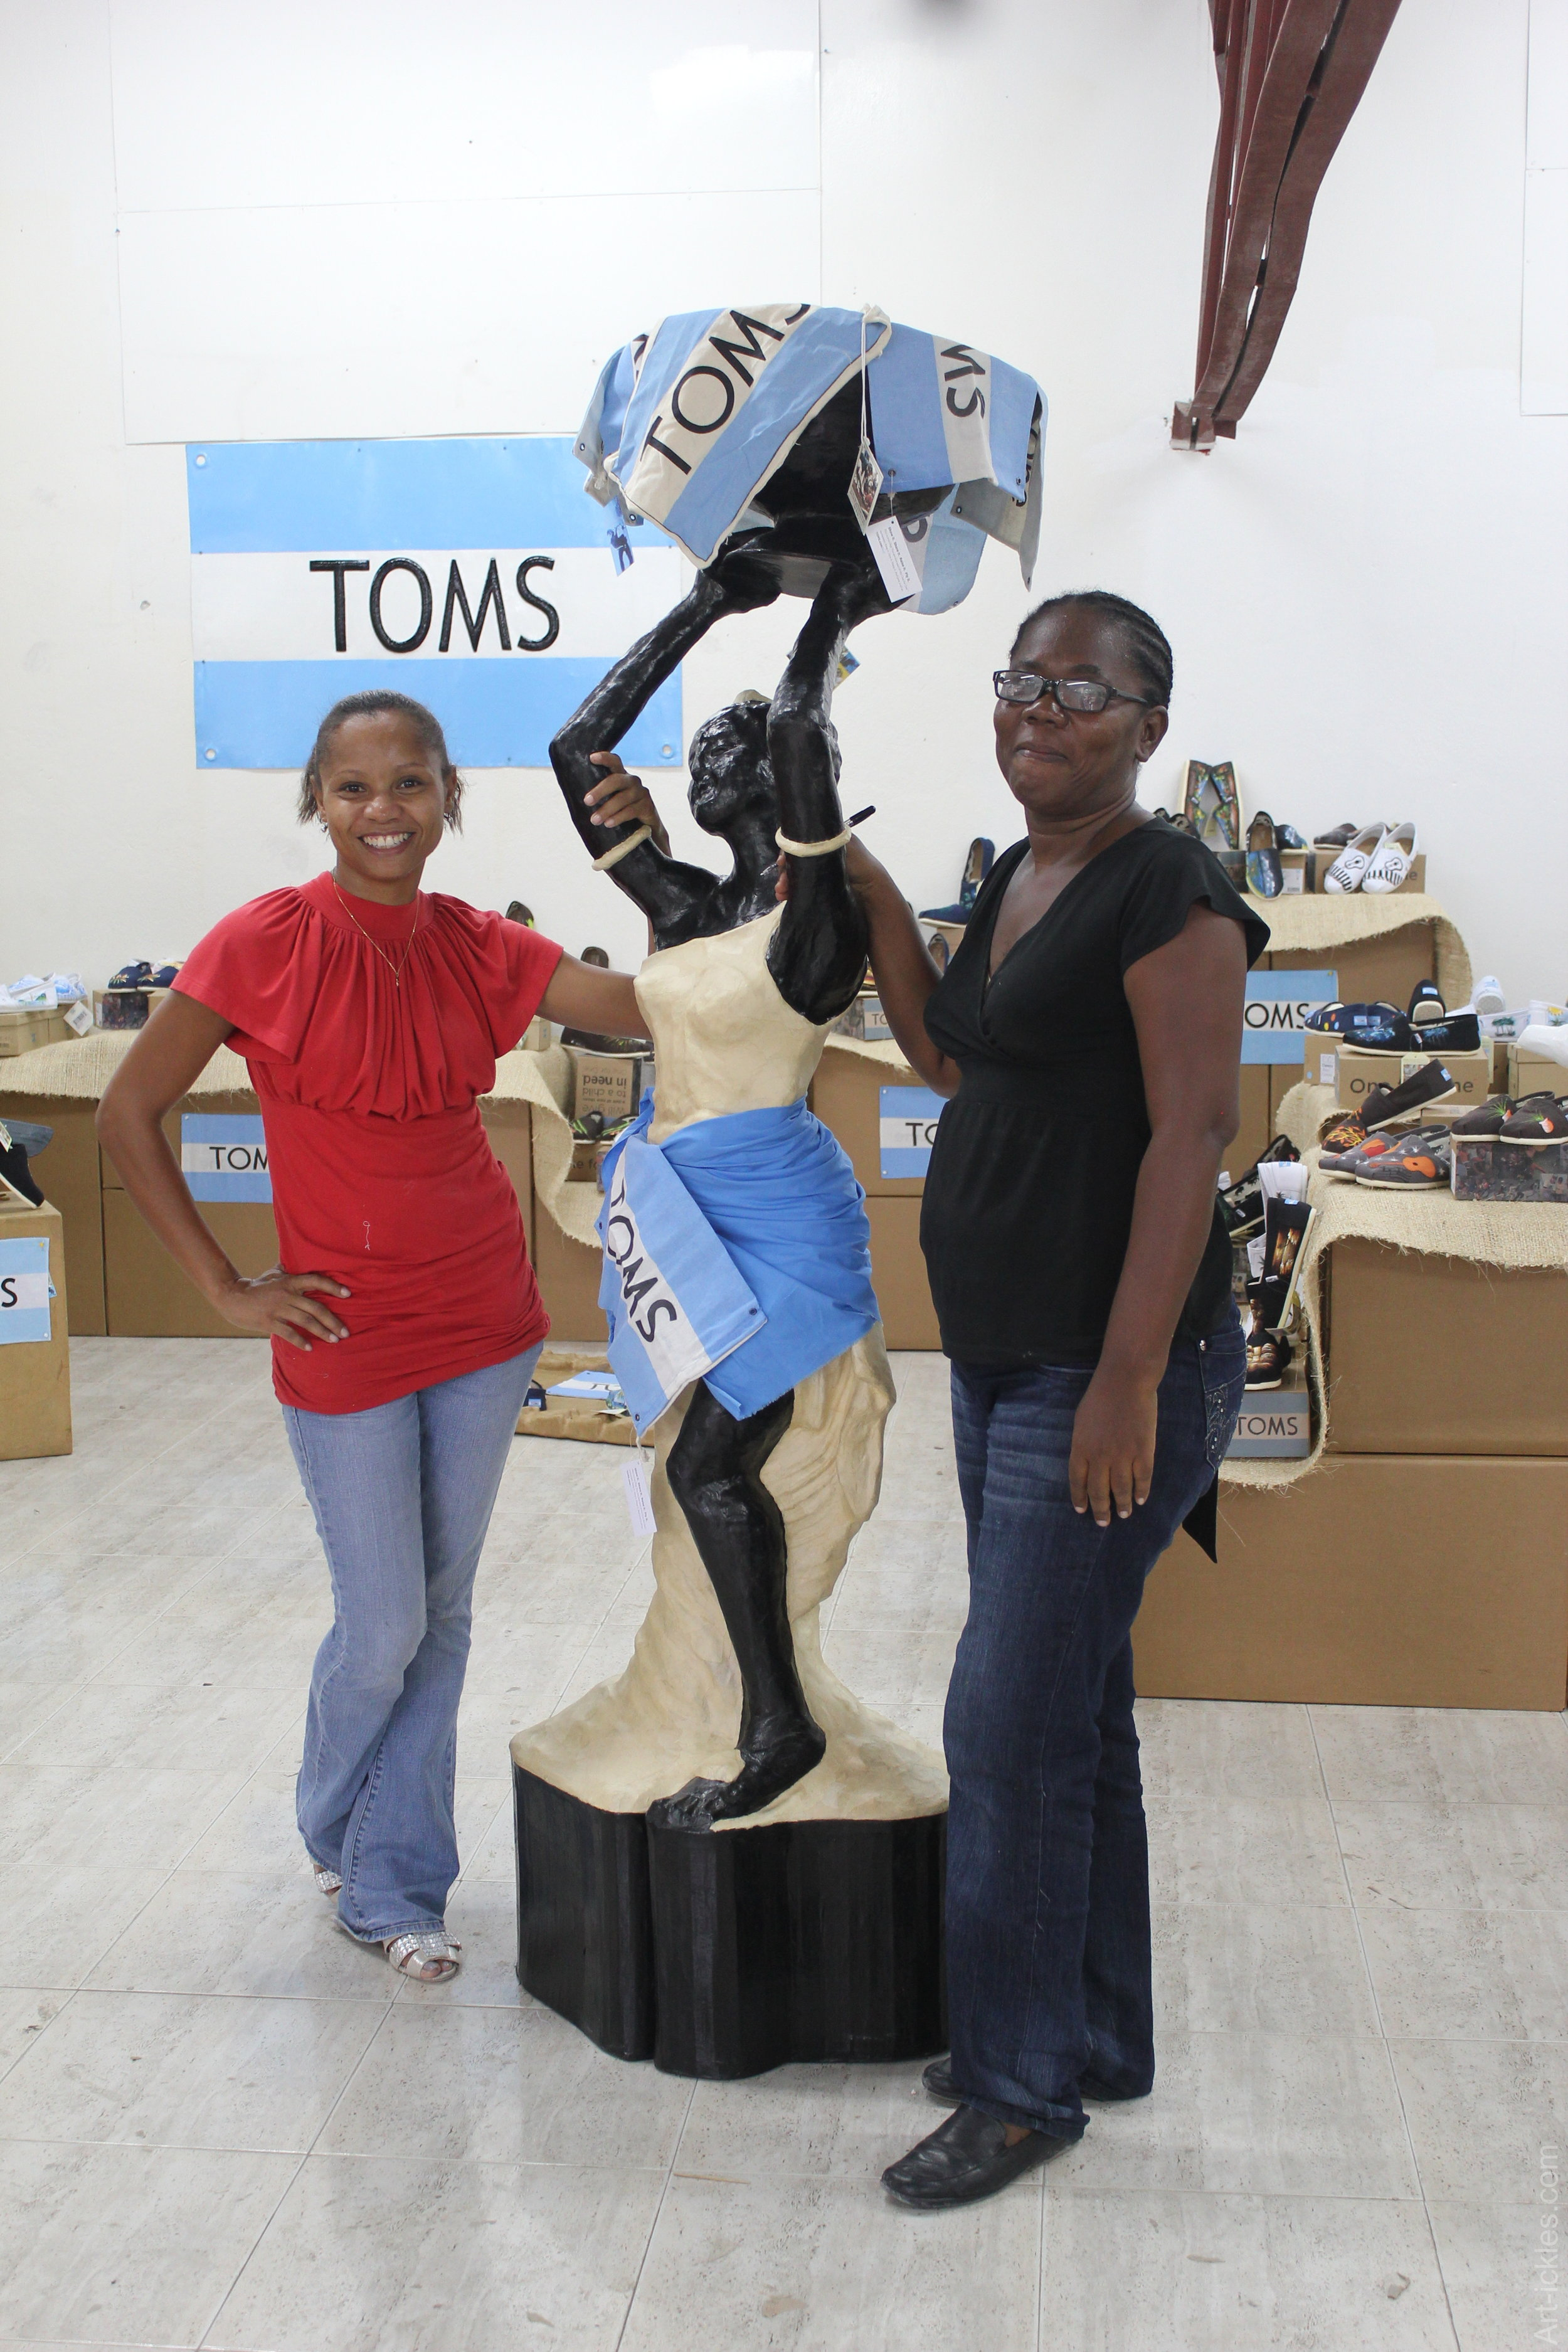 Marie Cella and Magalie at the TOMS display